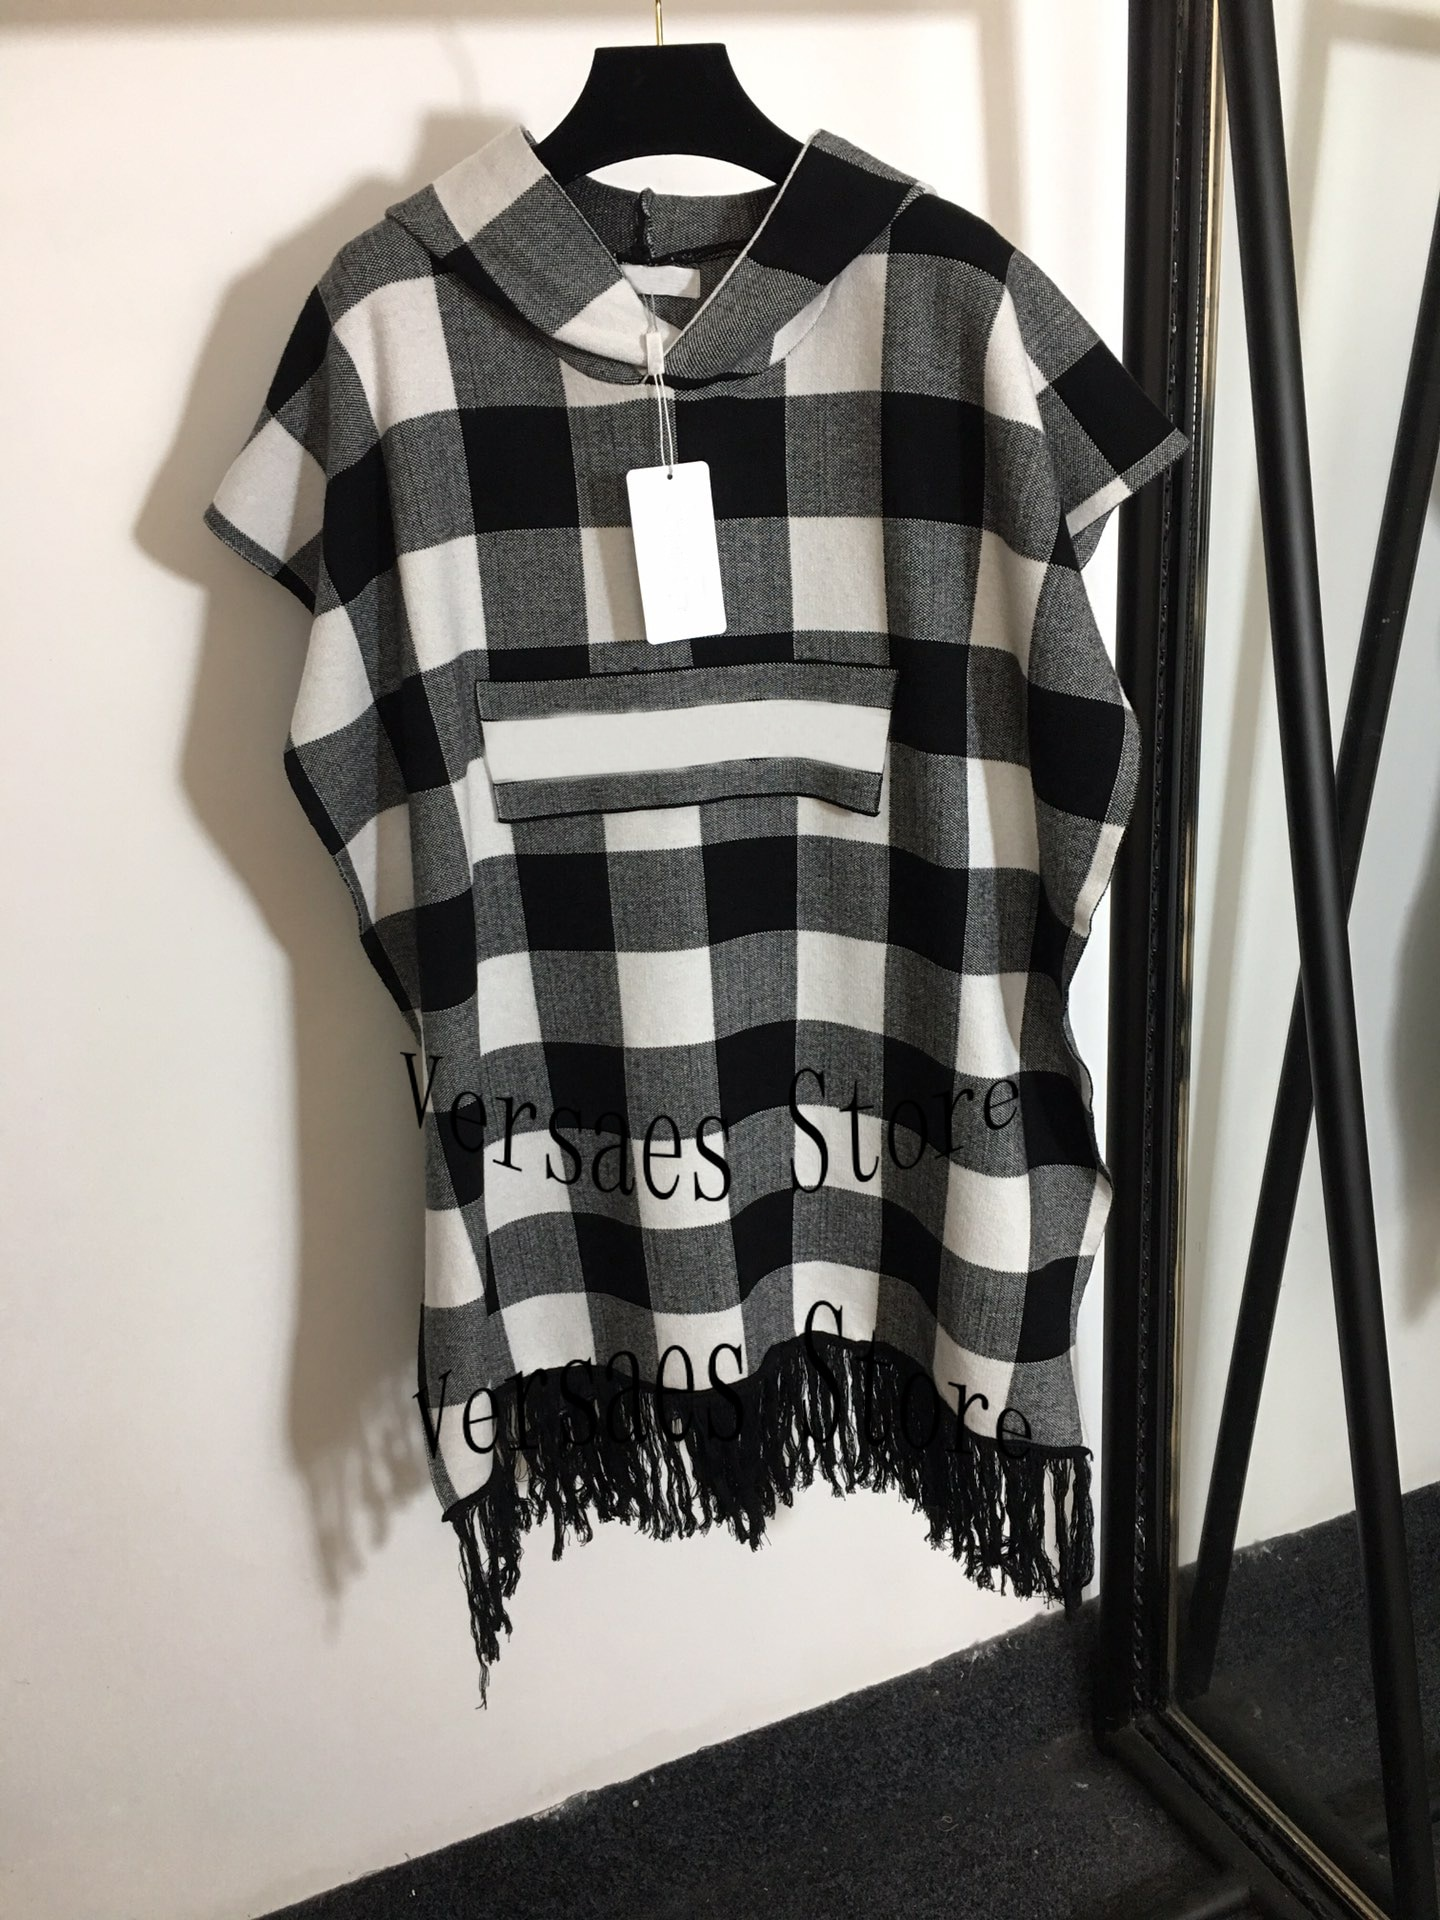 2021 luxury design color contrast Plaid women's fashion sleeveless hooded top temperament slim fringed Cape Cape long coat enlarge